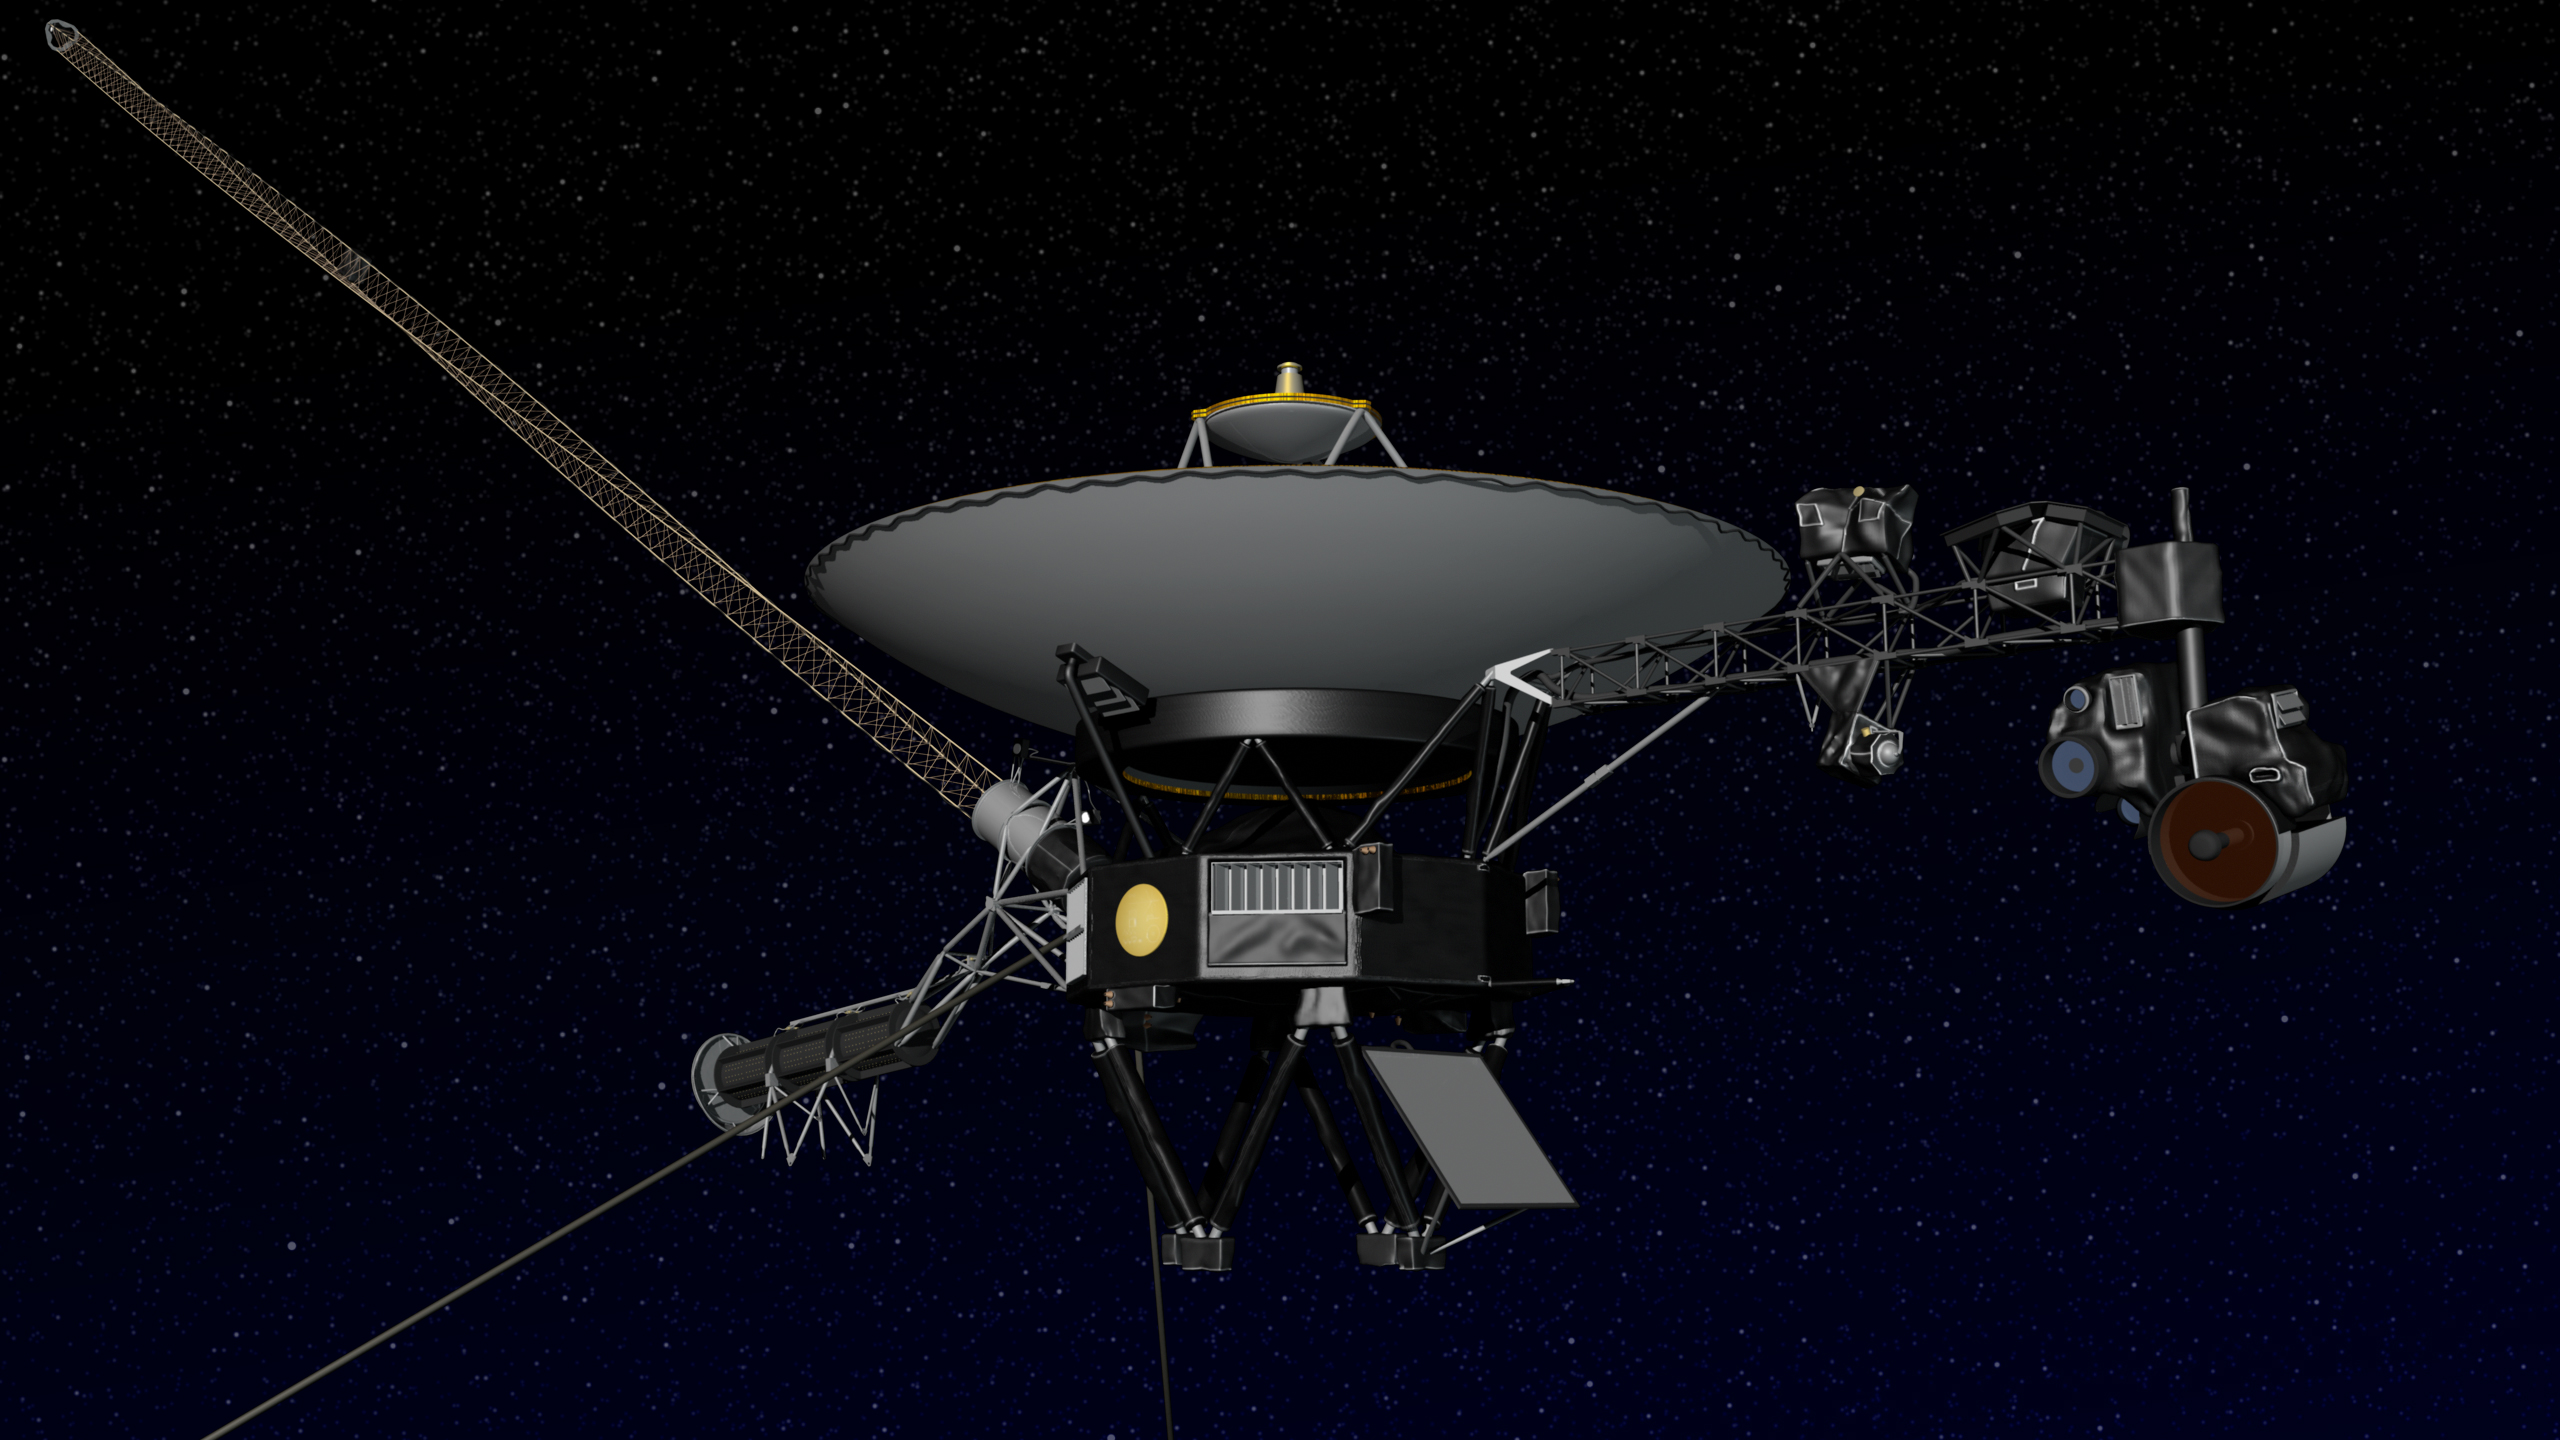 NASA Voyager 1 Spacecraft - Pics about space